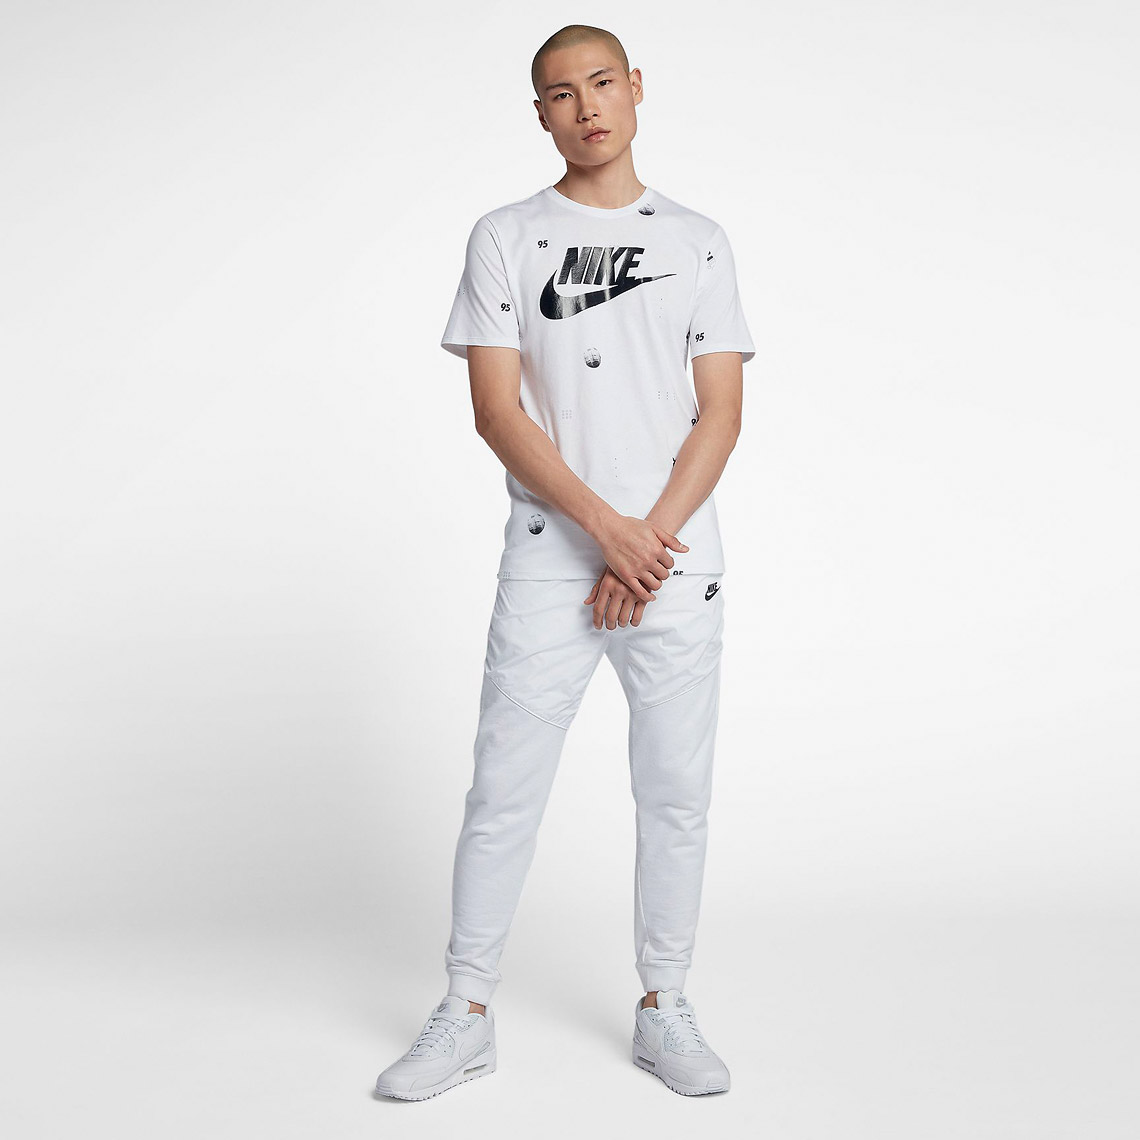 sportswear-air-max-mens-t-shirt-8wMNkzwe